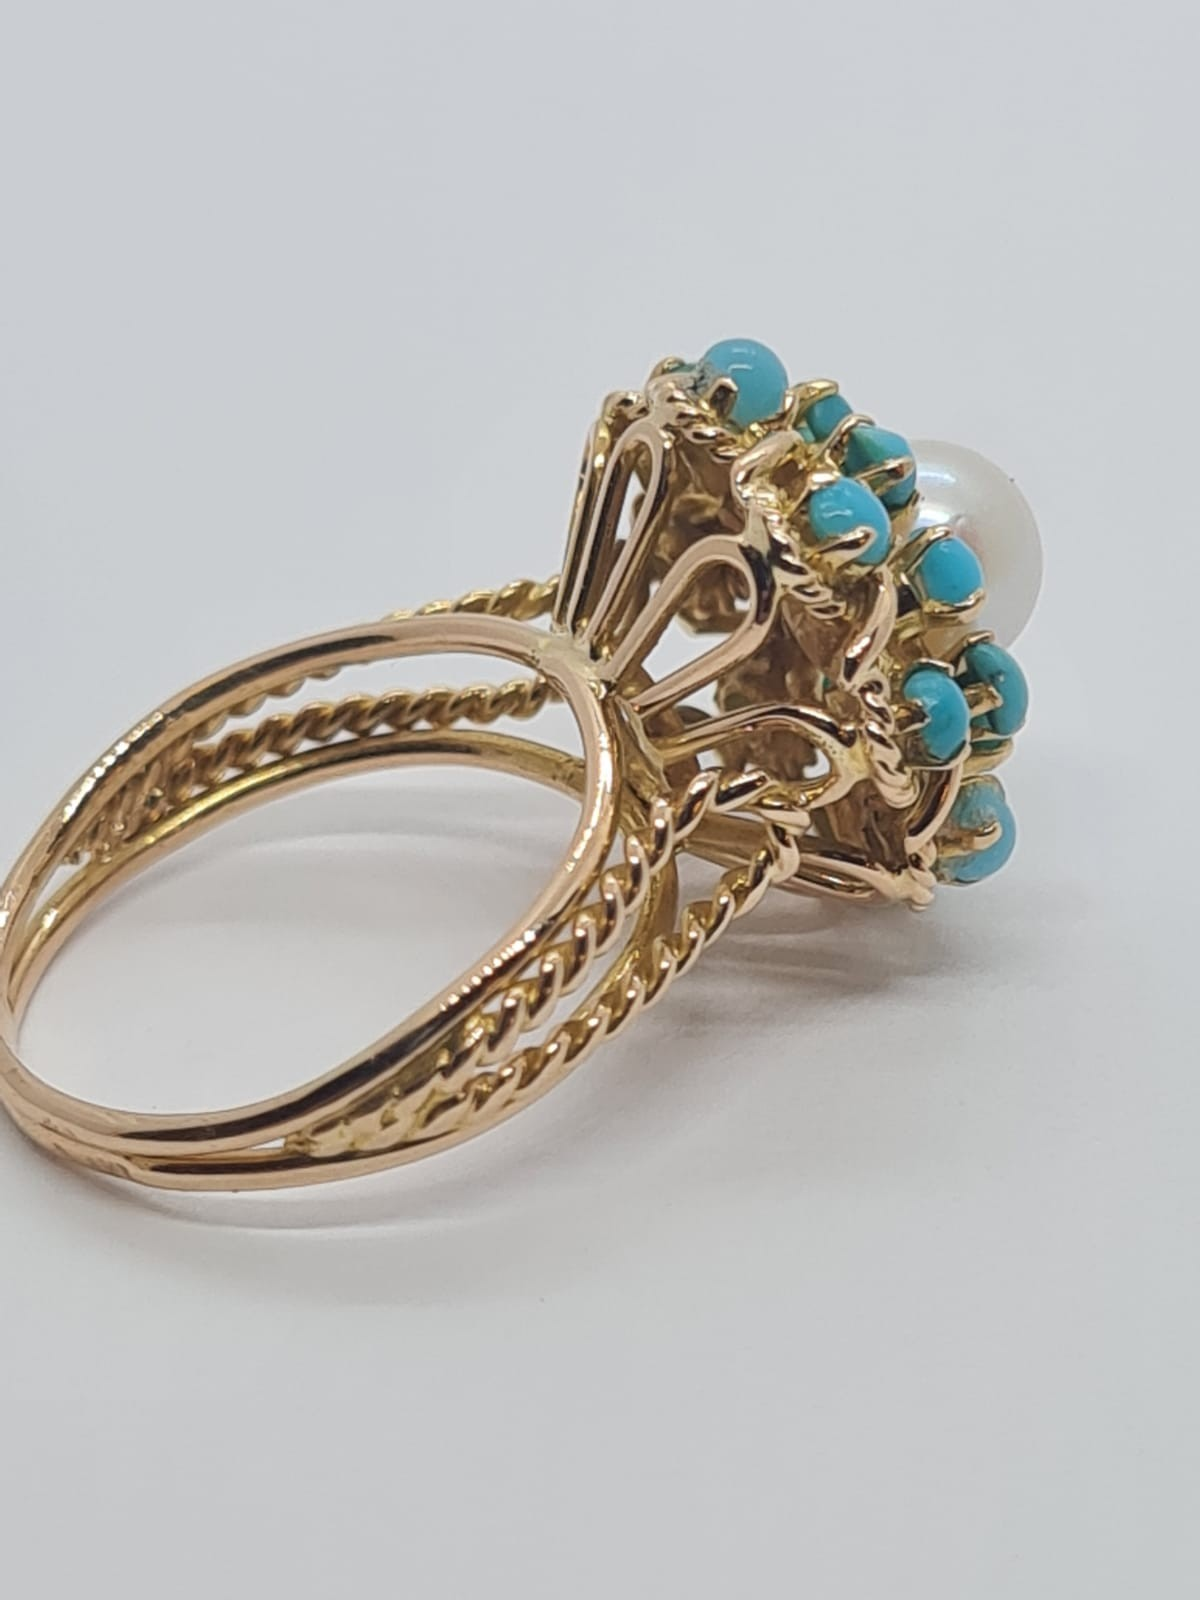 18k yellow gold TURQUISE AND PEARL CLUSTER RING, weight 5.3g and size J1/2 - Image 4 of 8